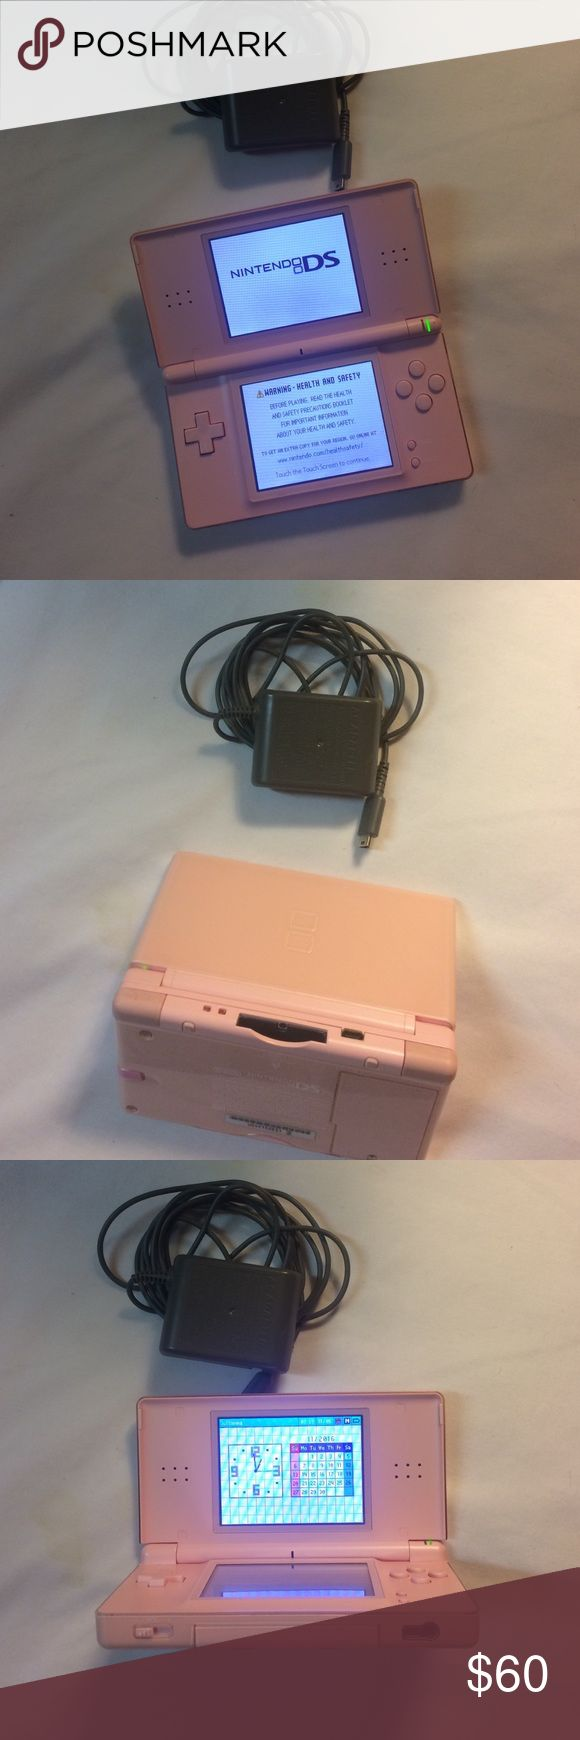 Nintendo DS., pink adult used Light Pink  / charger, pen & Usb AC adapter Nintendo Other